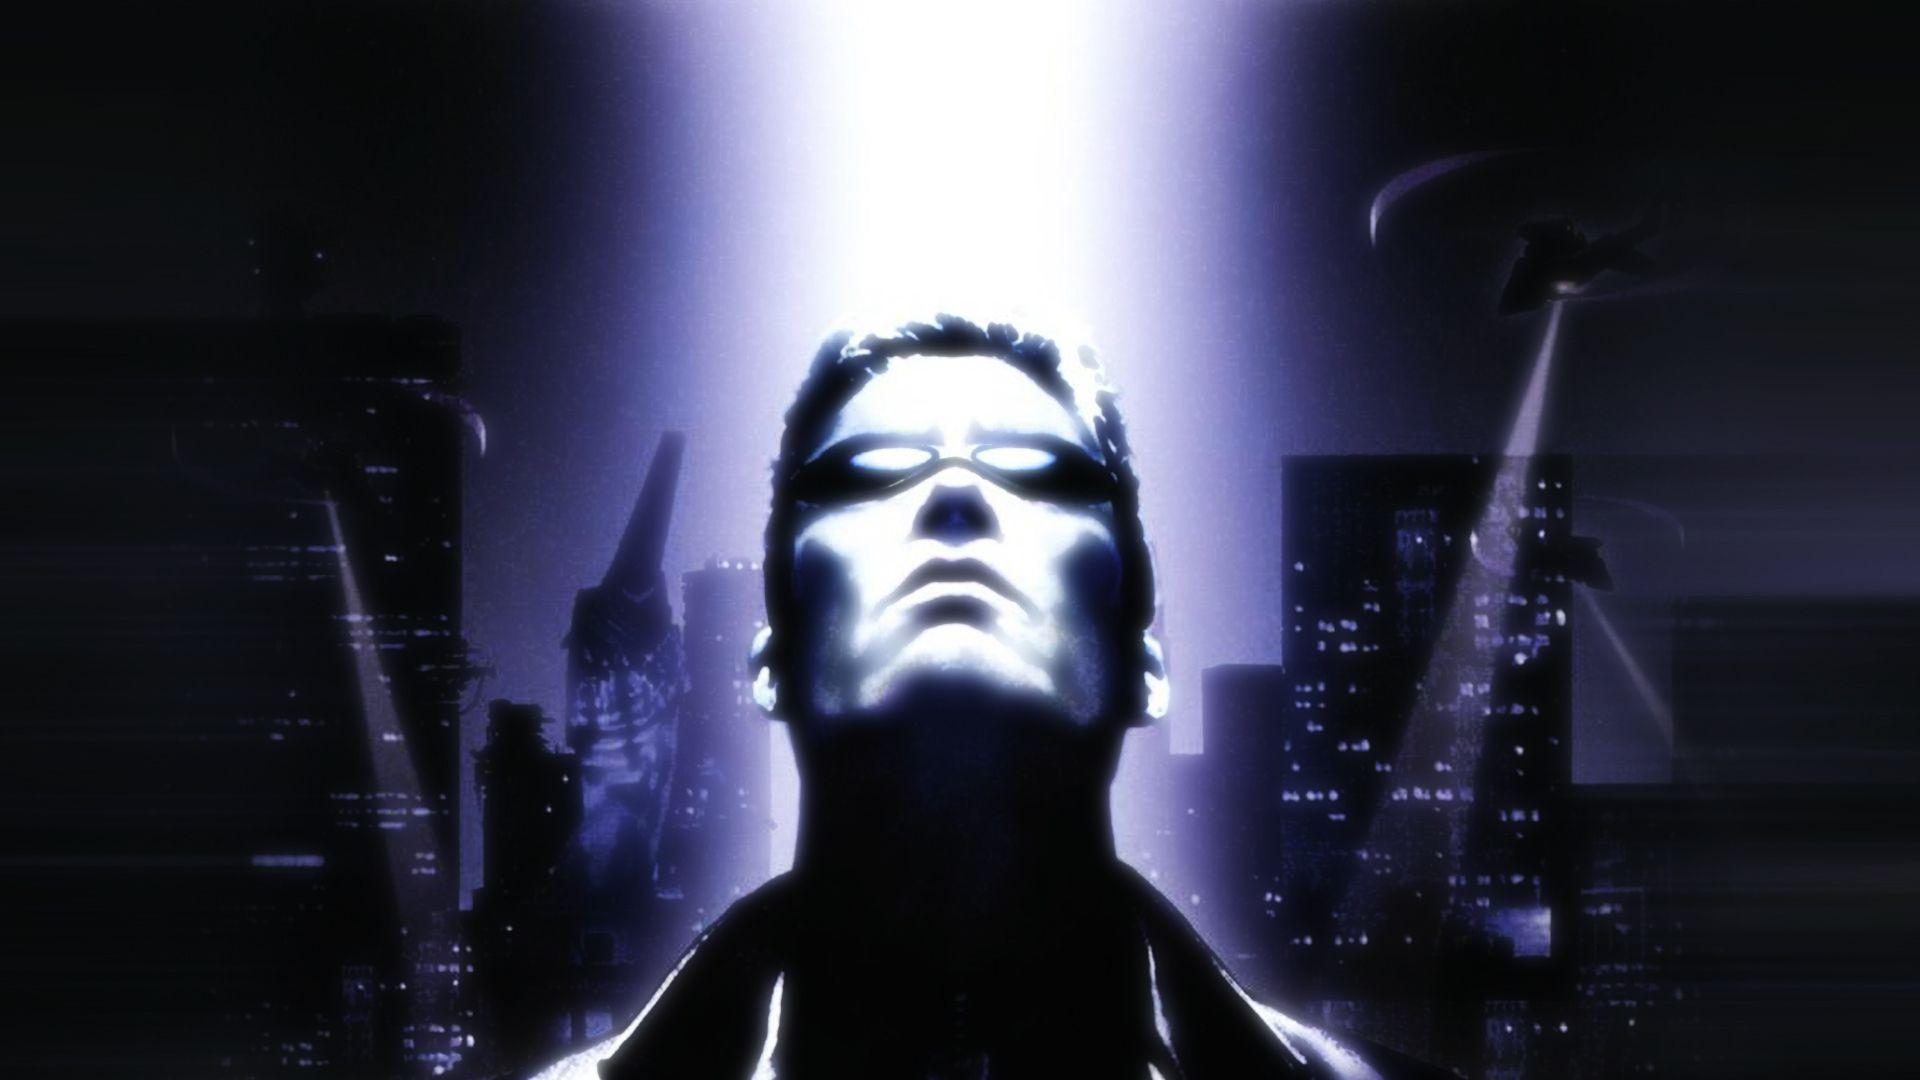 Deus Ex Wallpapers